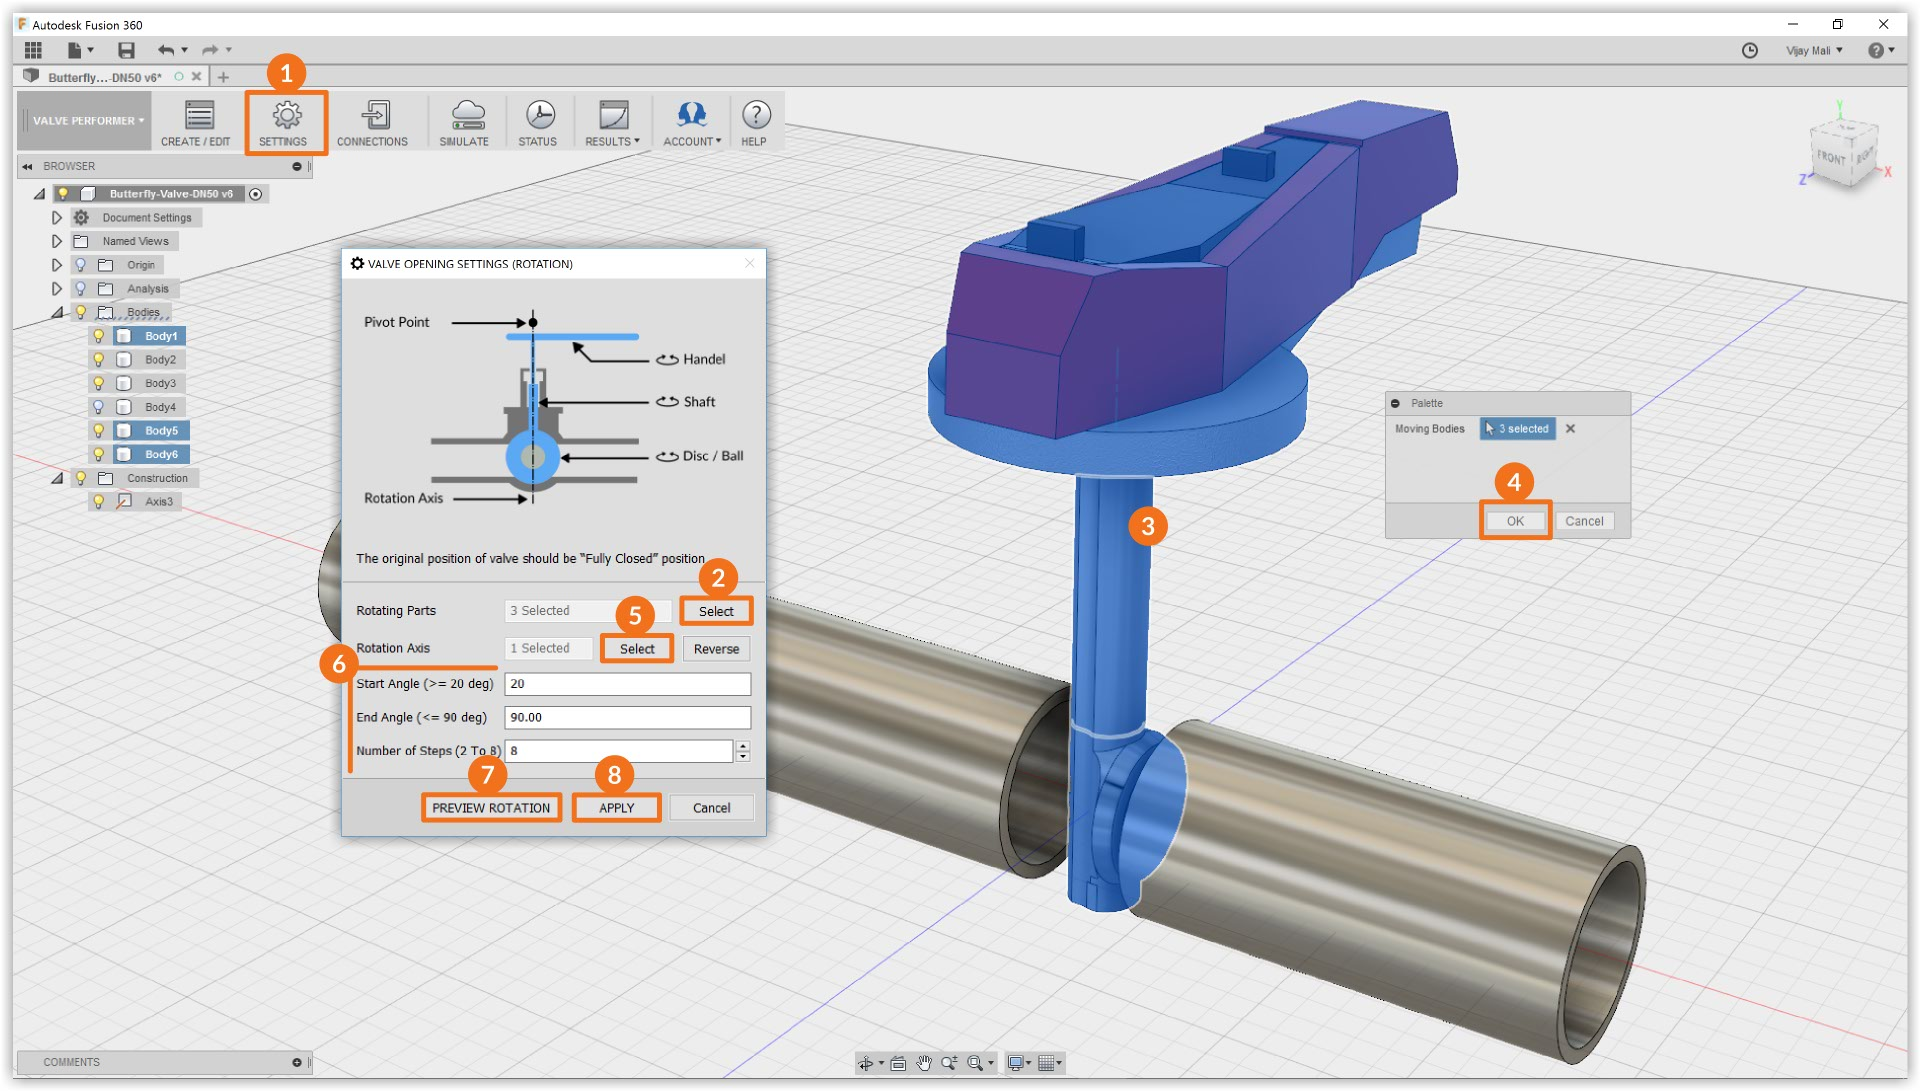 Getting Started with Autodesk Fusion 360 Plugin for Control